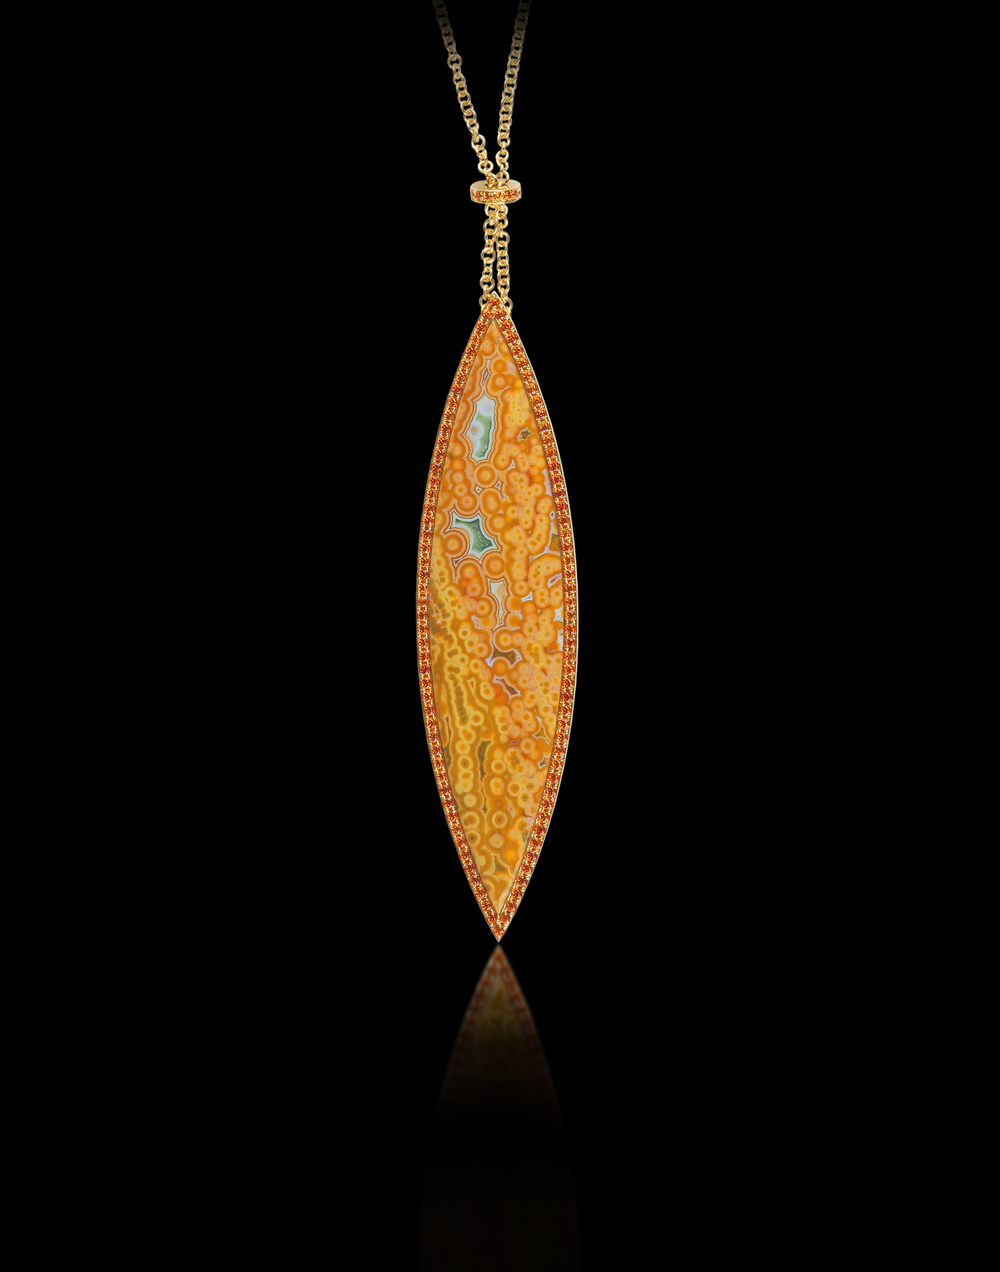 Pendulum   Elegance resides naturally in all of nature's wonders.    Brooch and Pendant in 18 karat Yellow Gold, and Spessartite Garnets      $8,000